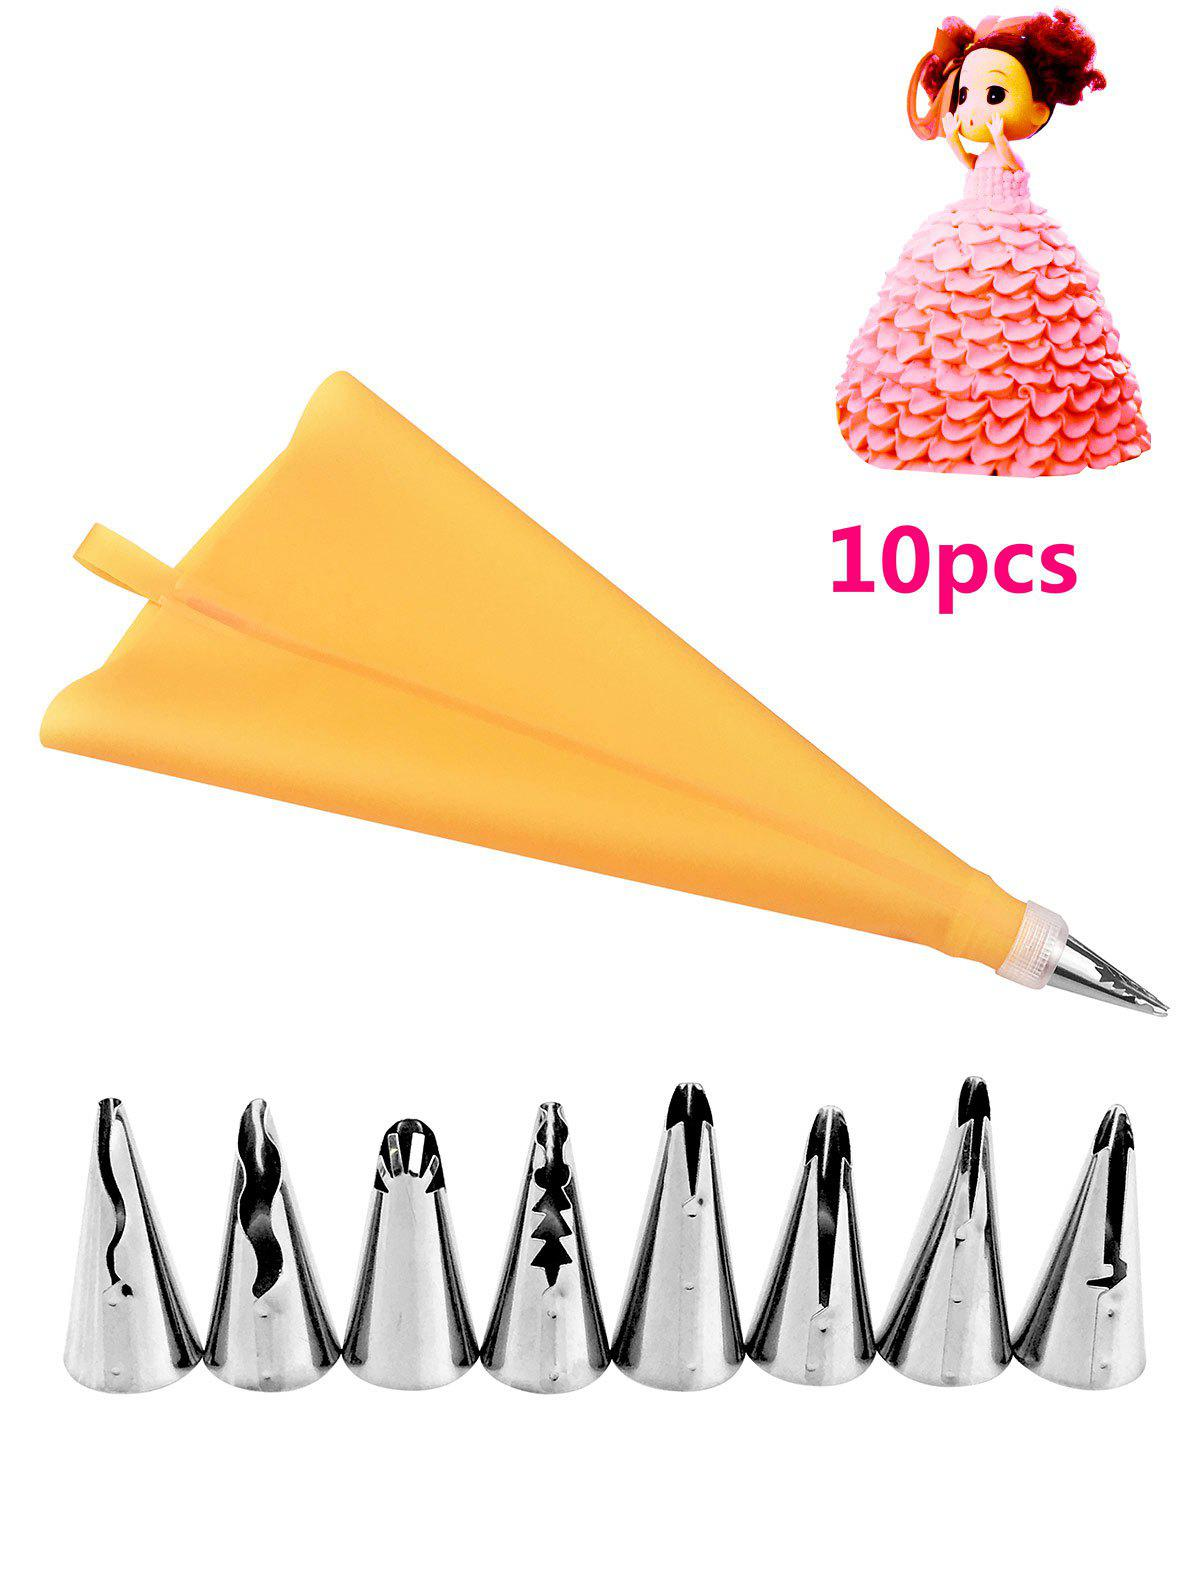 DIY Cake Decorating Squeeze Cream Stainless Steel Piping Nozzle SetHOME<br><br>Color: ORANGE; Material: Stainless Steel; Weight: 0.0840kg; Package Contents: 1 x Cake Piping Bag, 1 x Cake Piping Bag Adapter, 8 x Stainless Steel Nozzle Mouth;